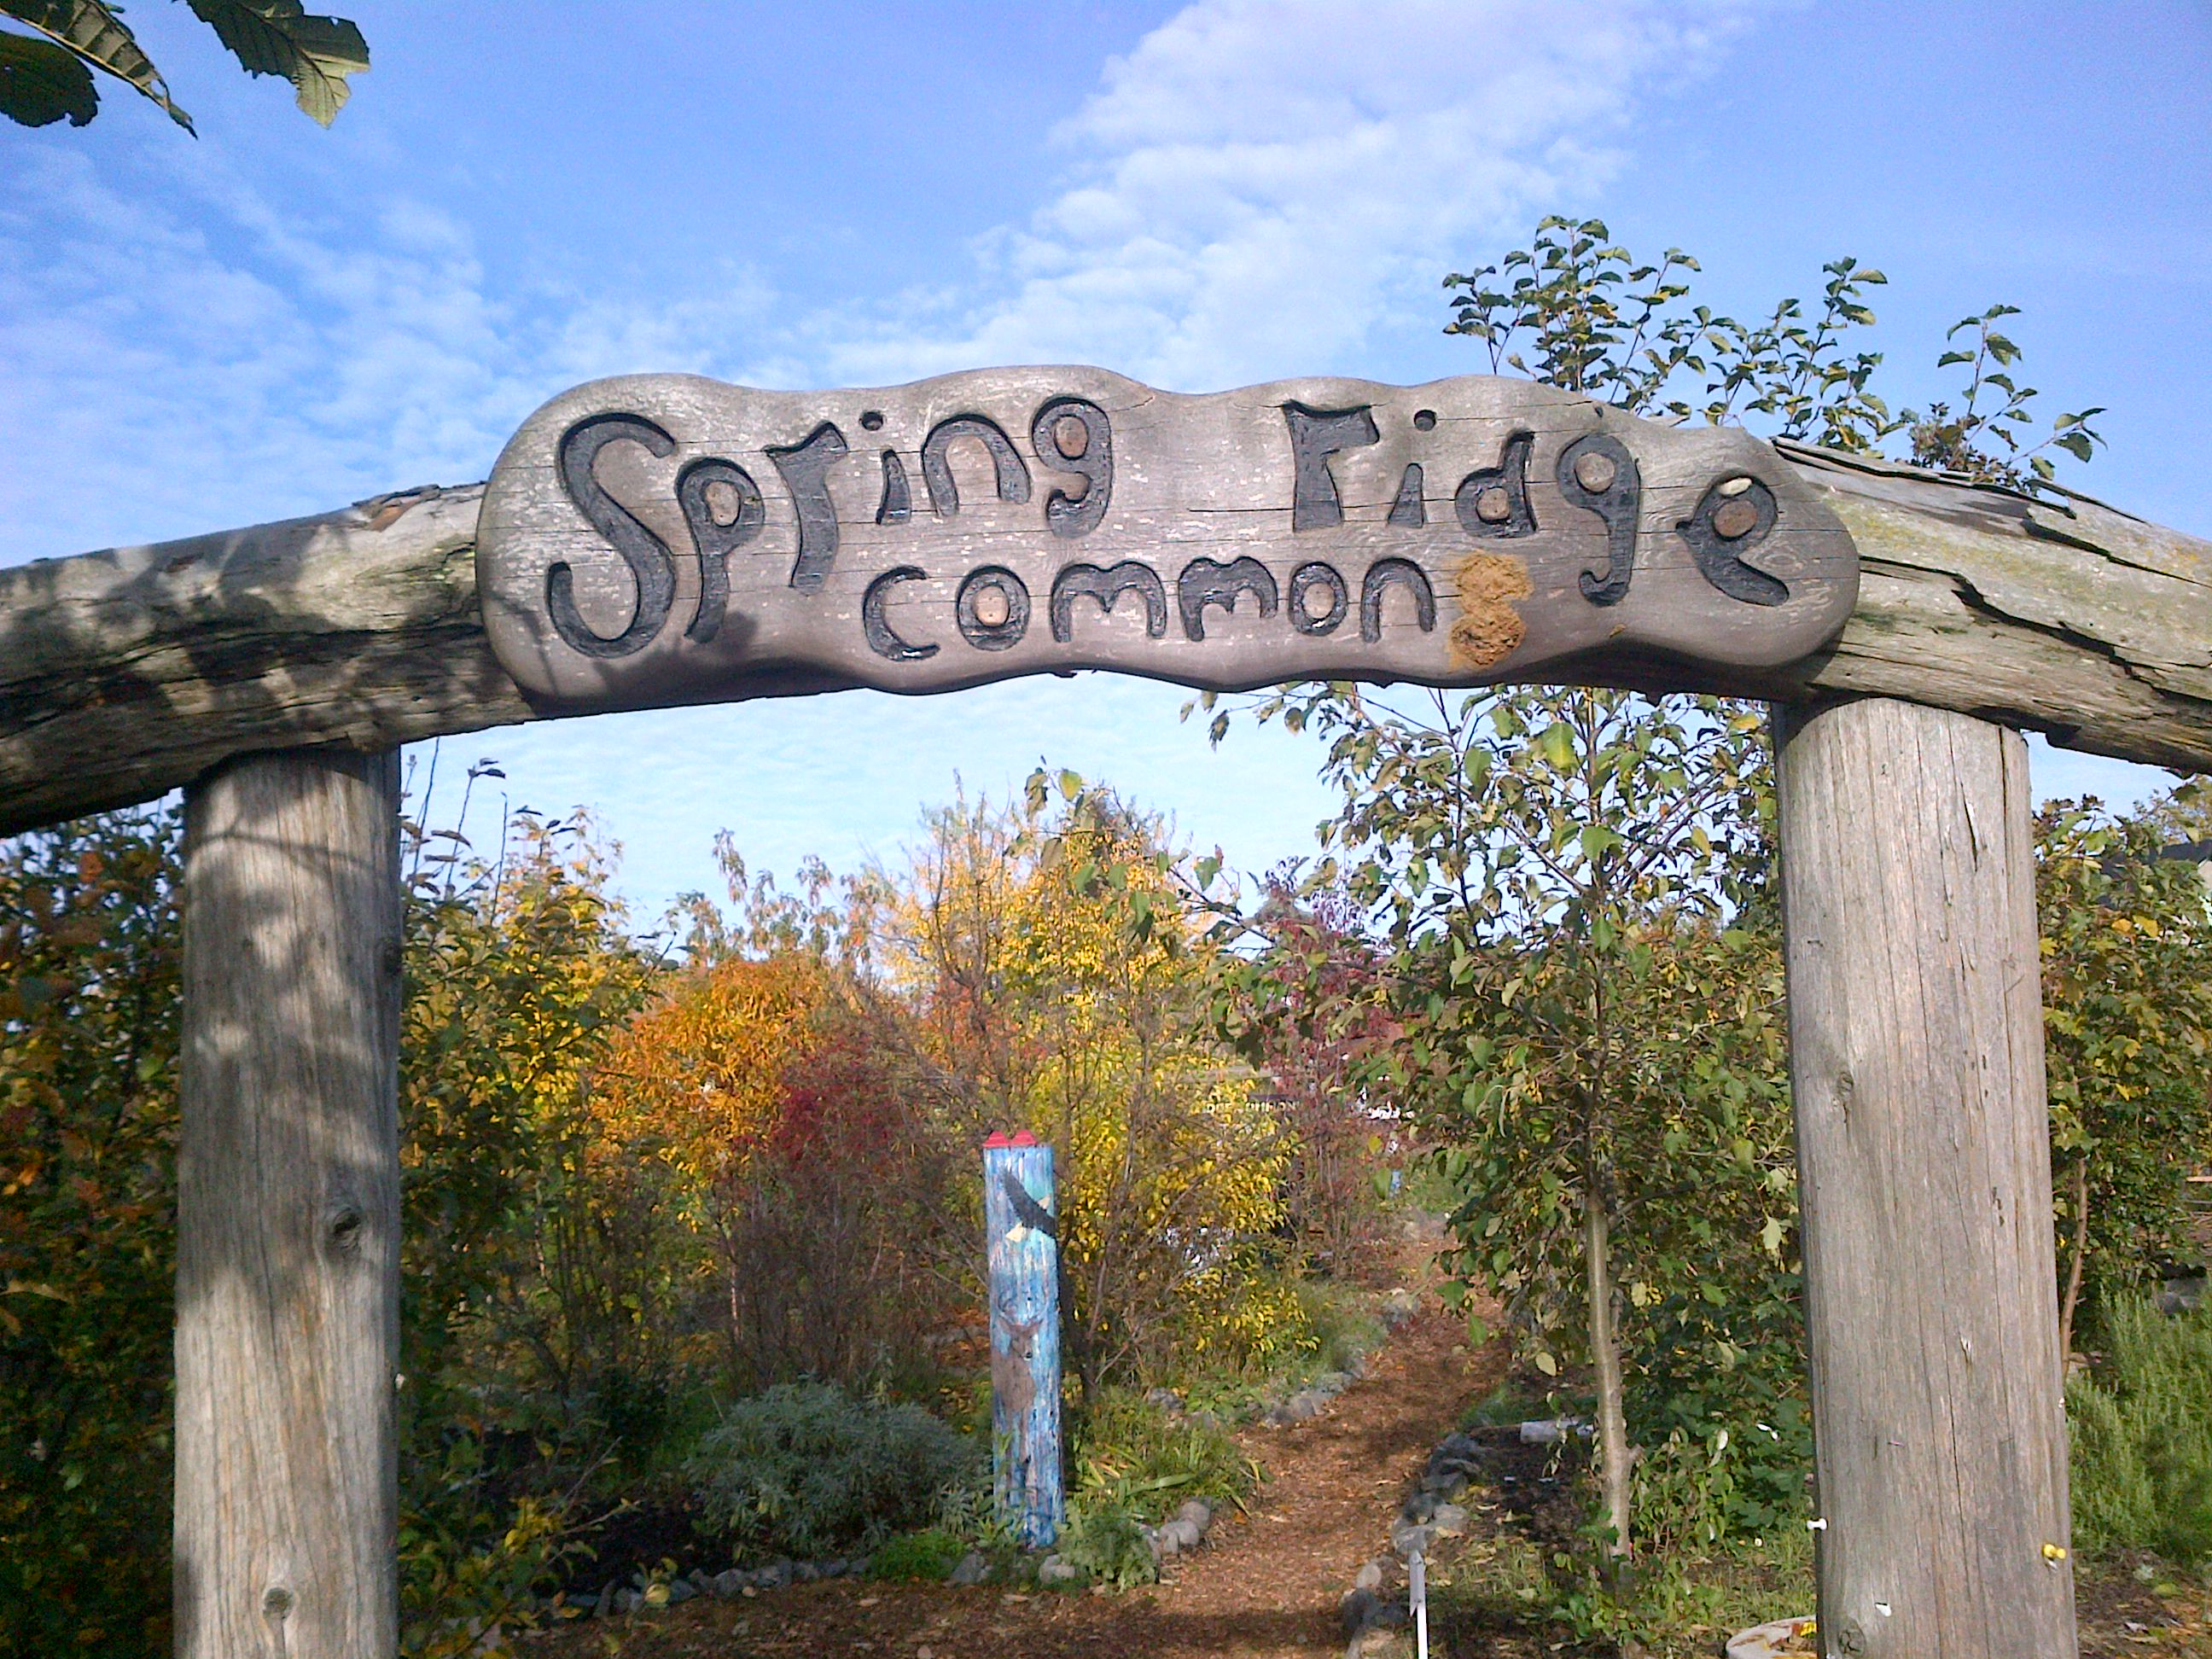 Spring Ridge Commons